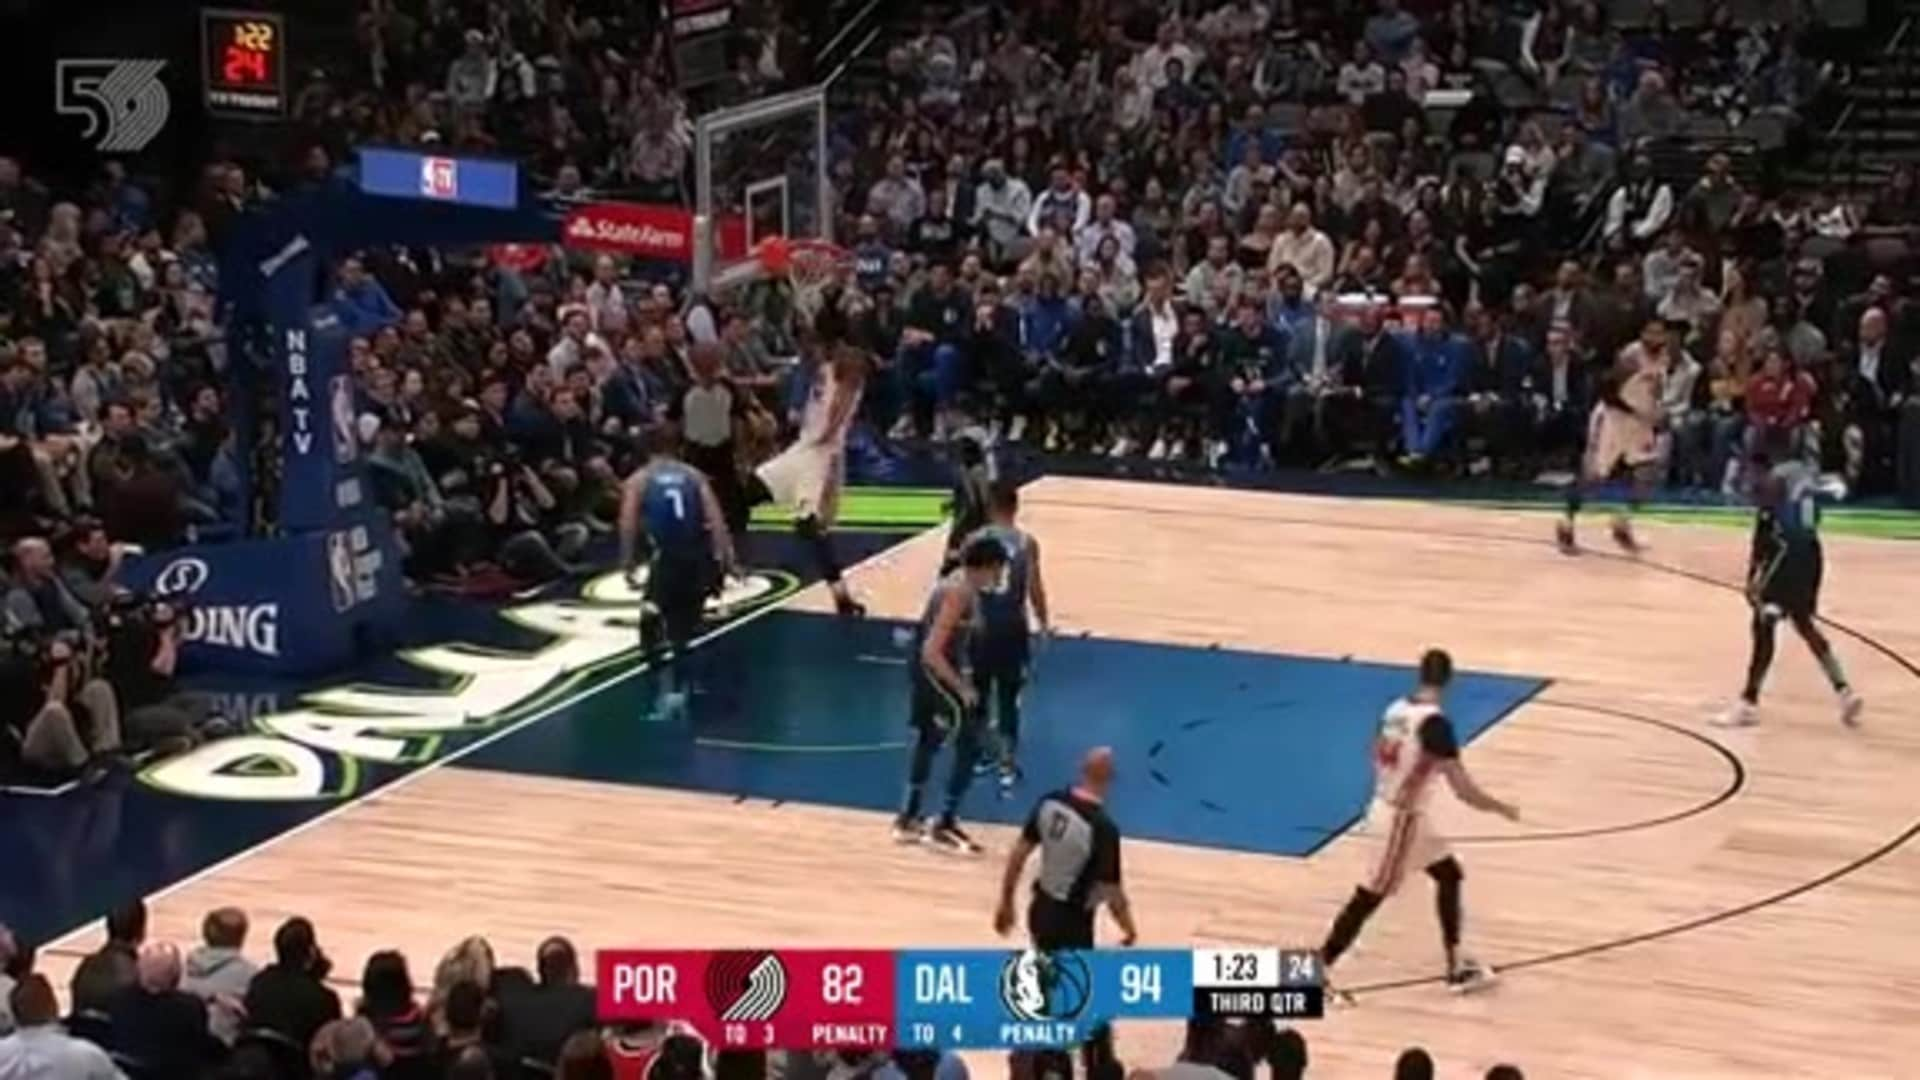 Hassan Whiteside with the big dunk in Dallas